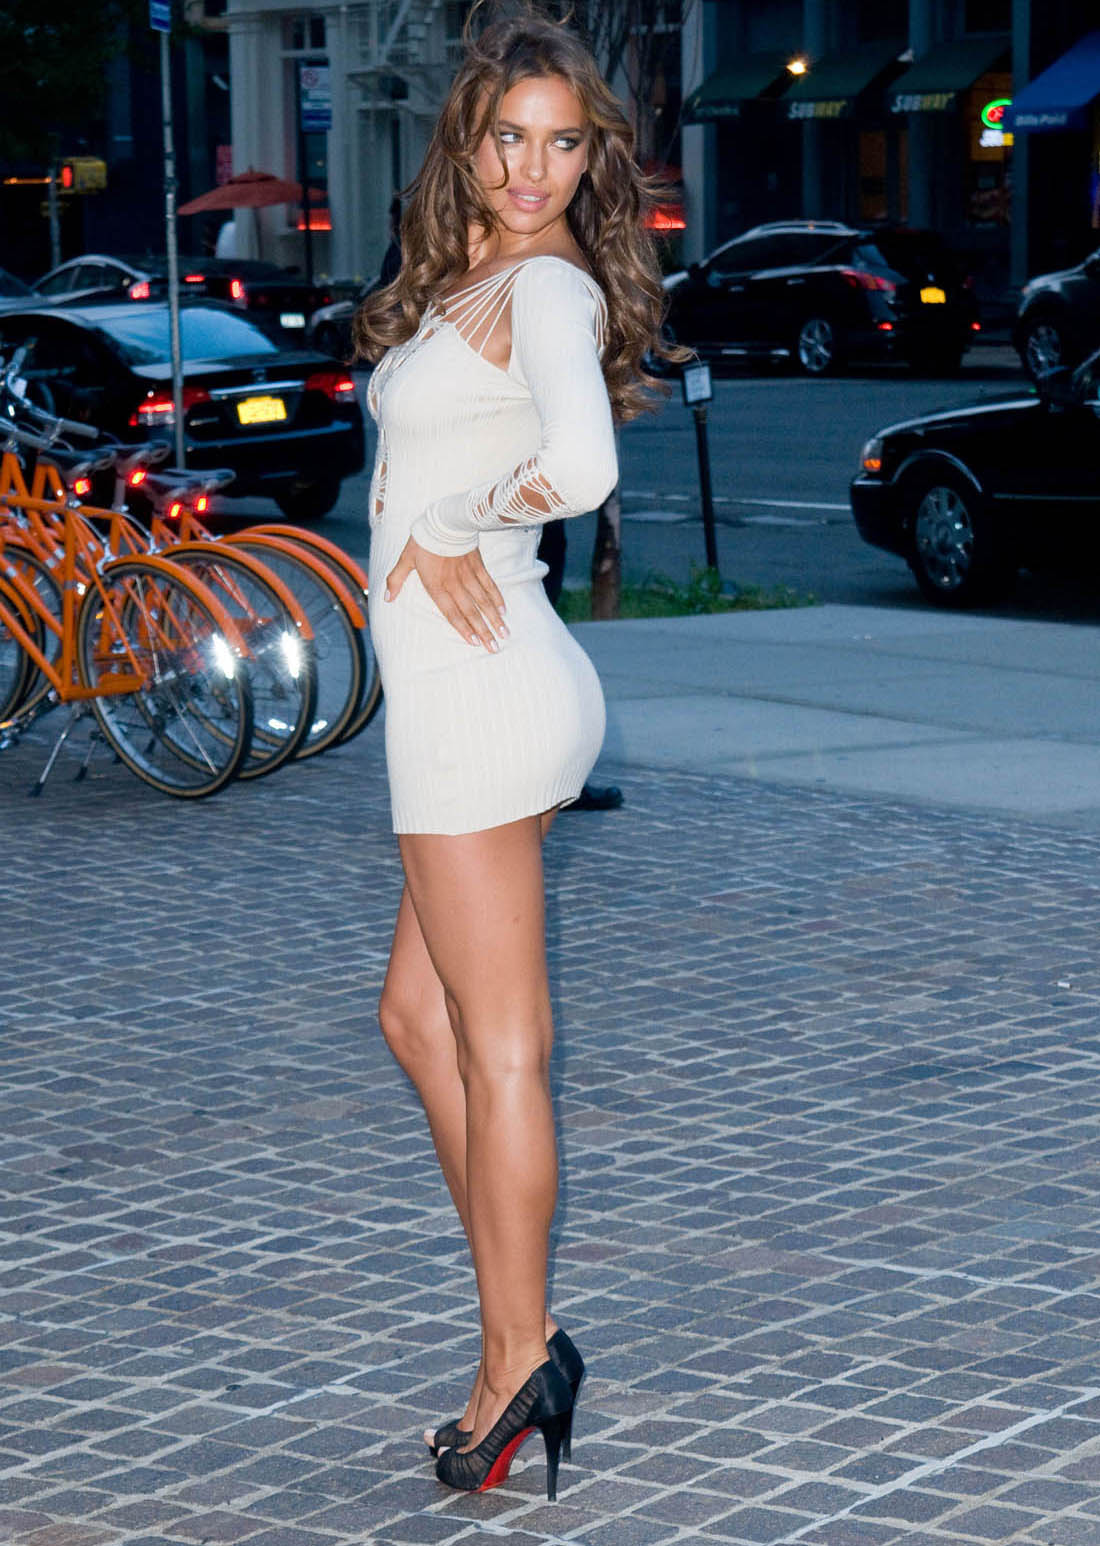 Irina Shayk Is Curvy With Gorgeous Legs In A Short Revealing Dress And Wallpaper